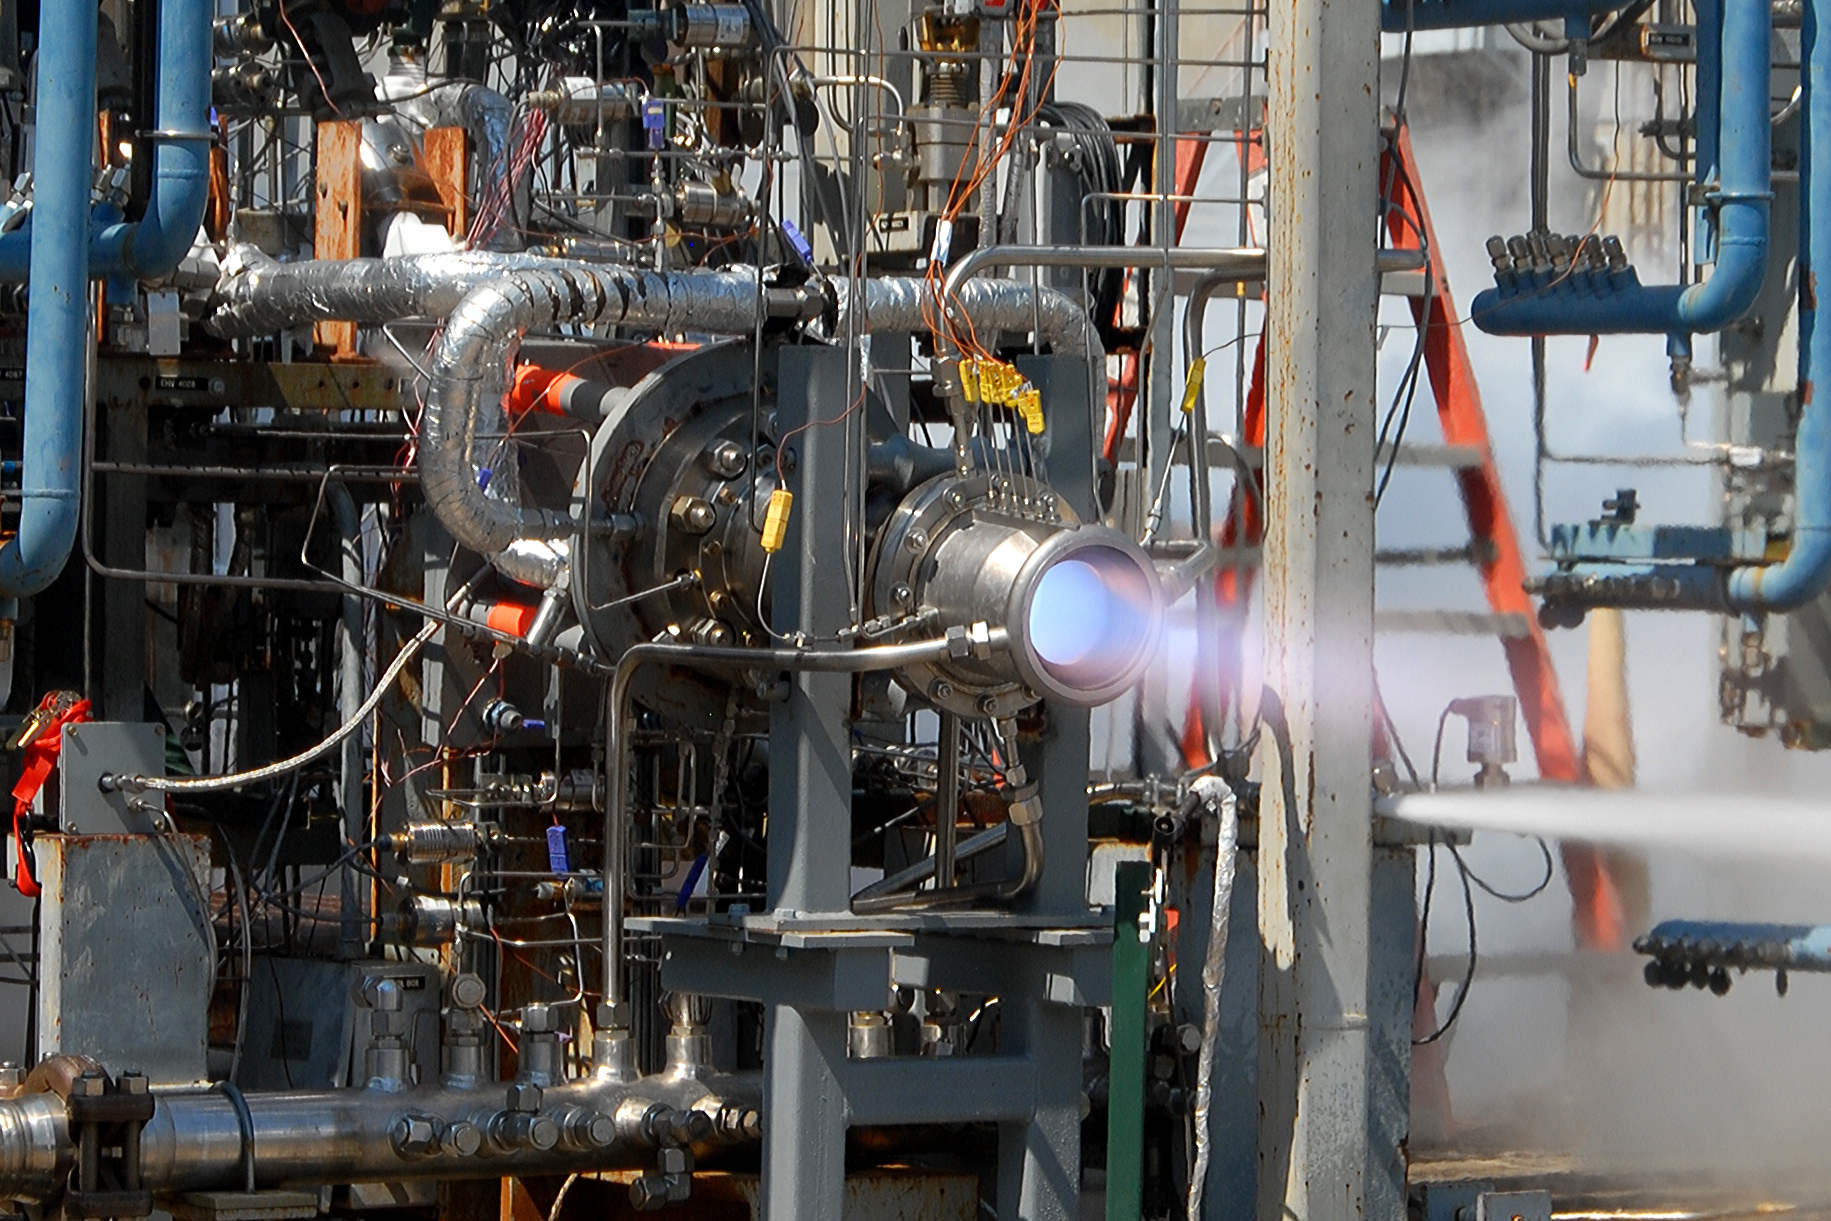 Nasa Tests Methane Engine Components For Next Generation